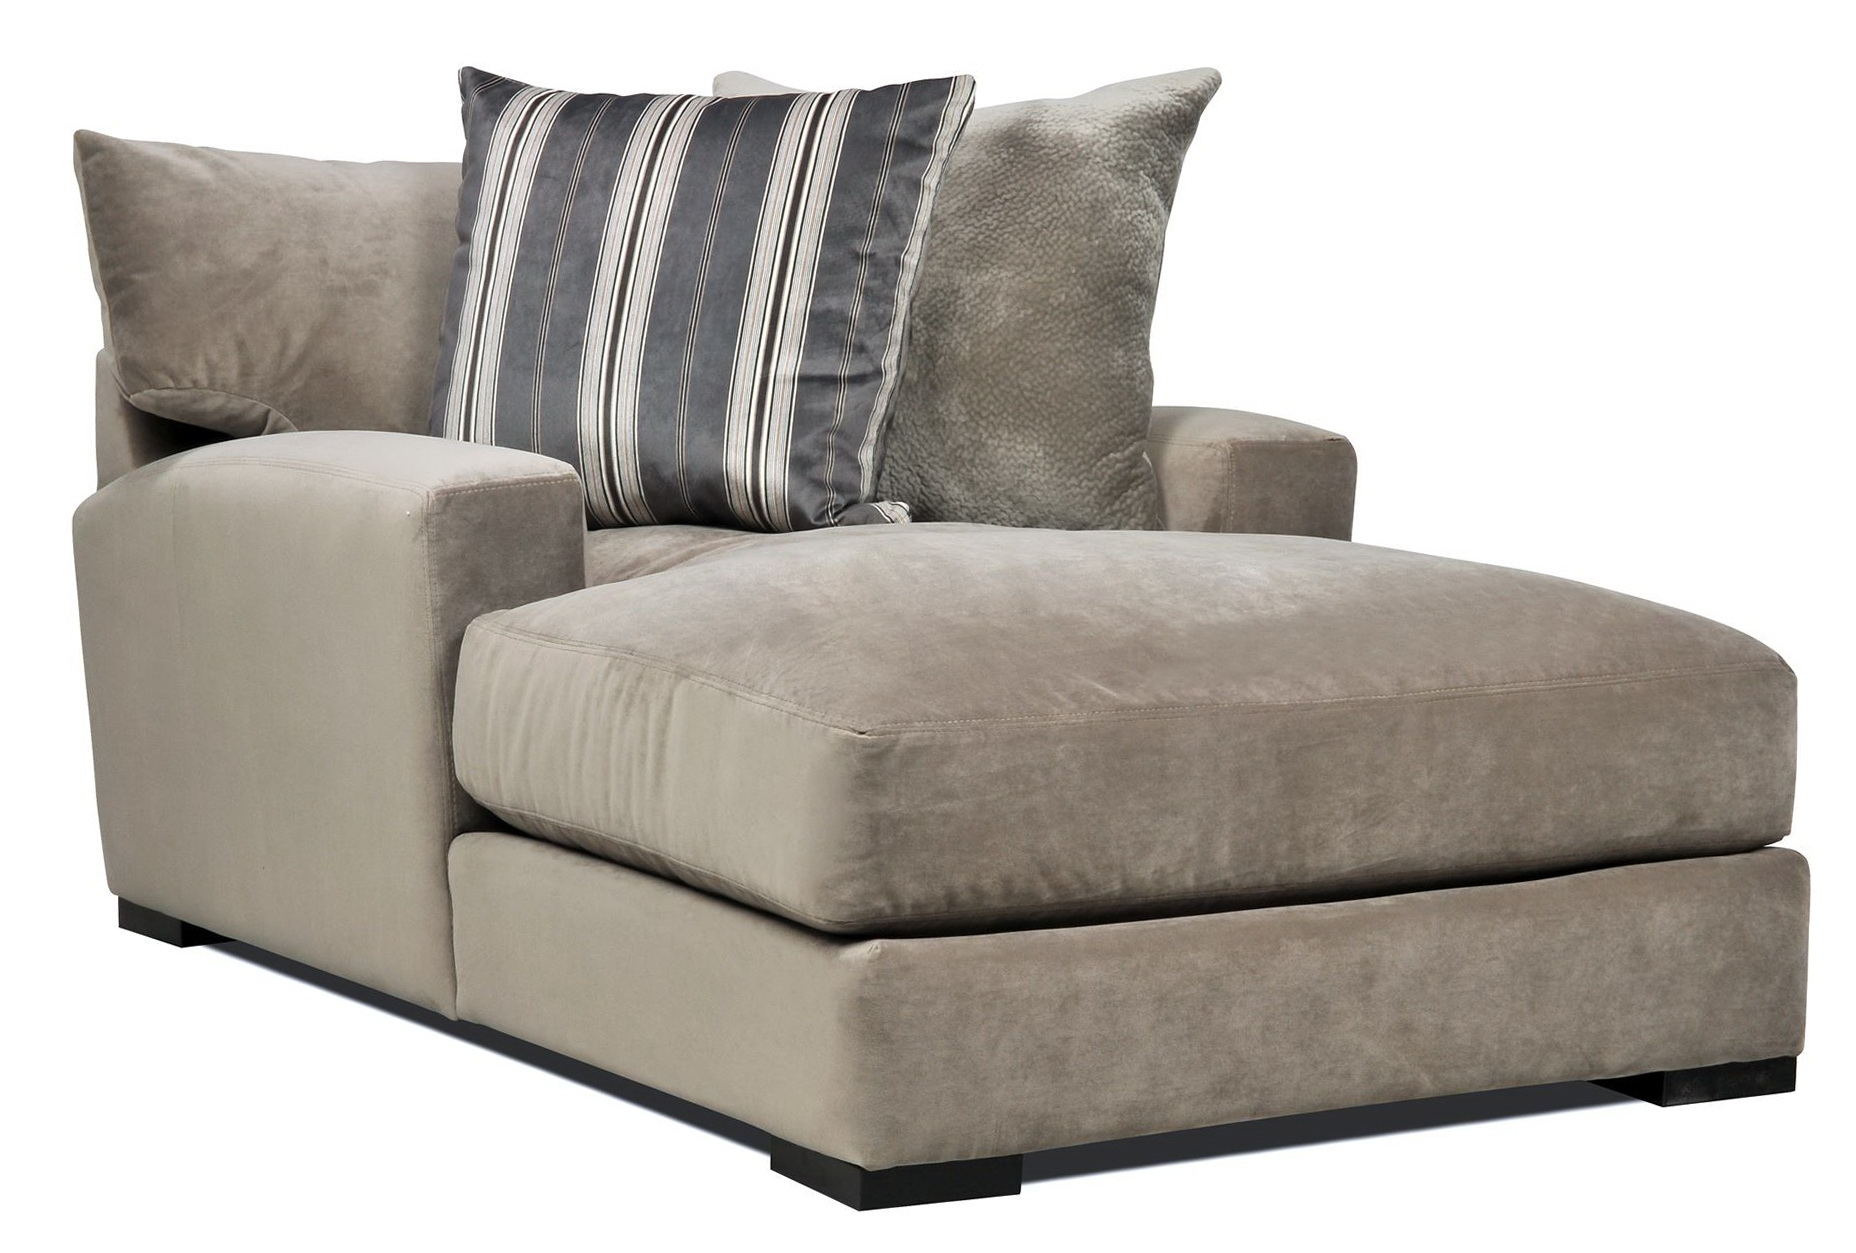 2018 Double Wide Chaise Lounge Indoor With 2 Cushions (View 1 of 15)